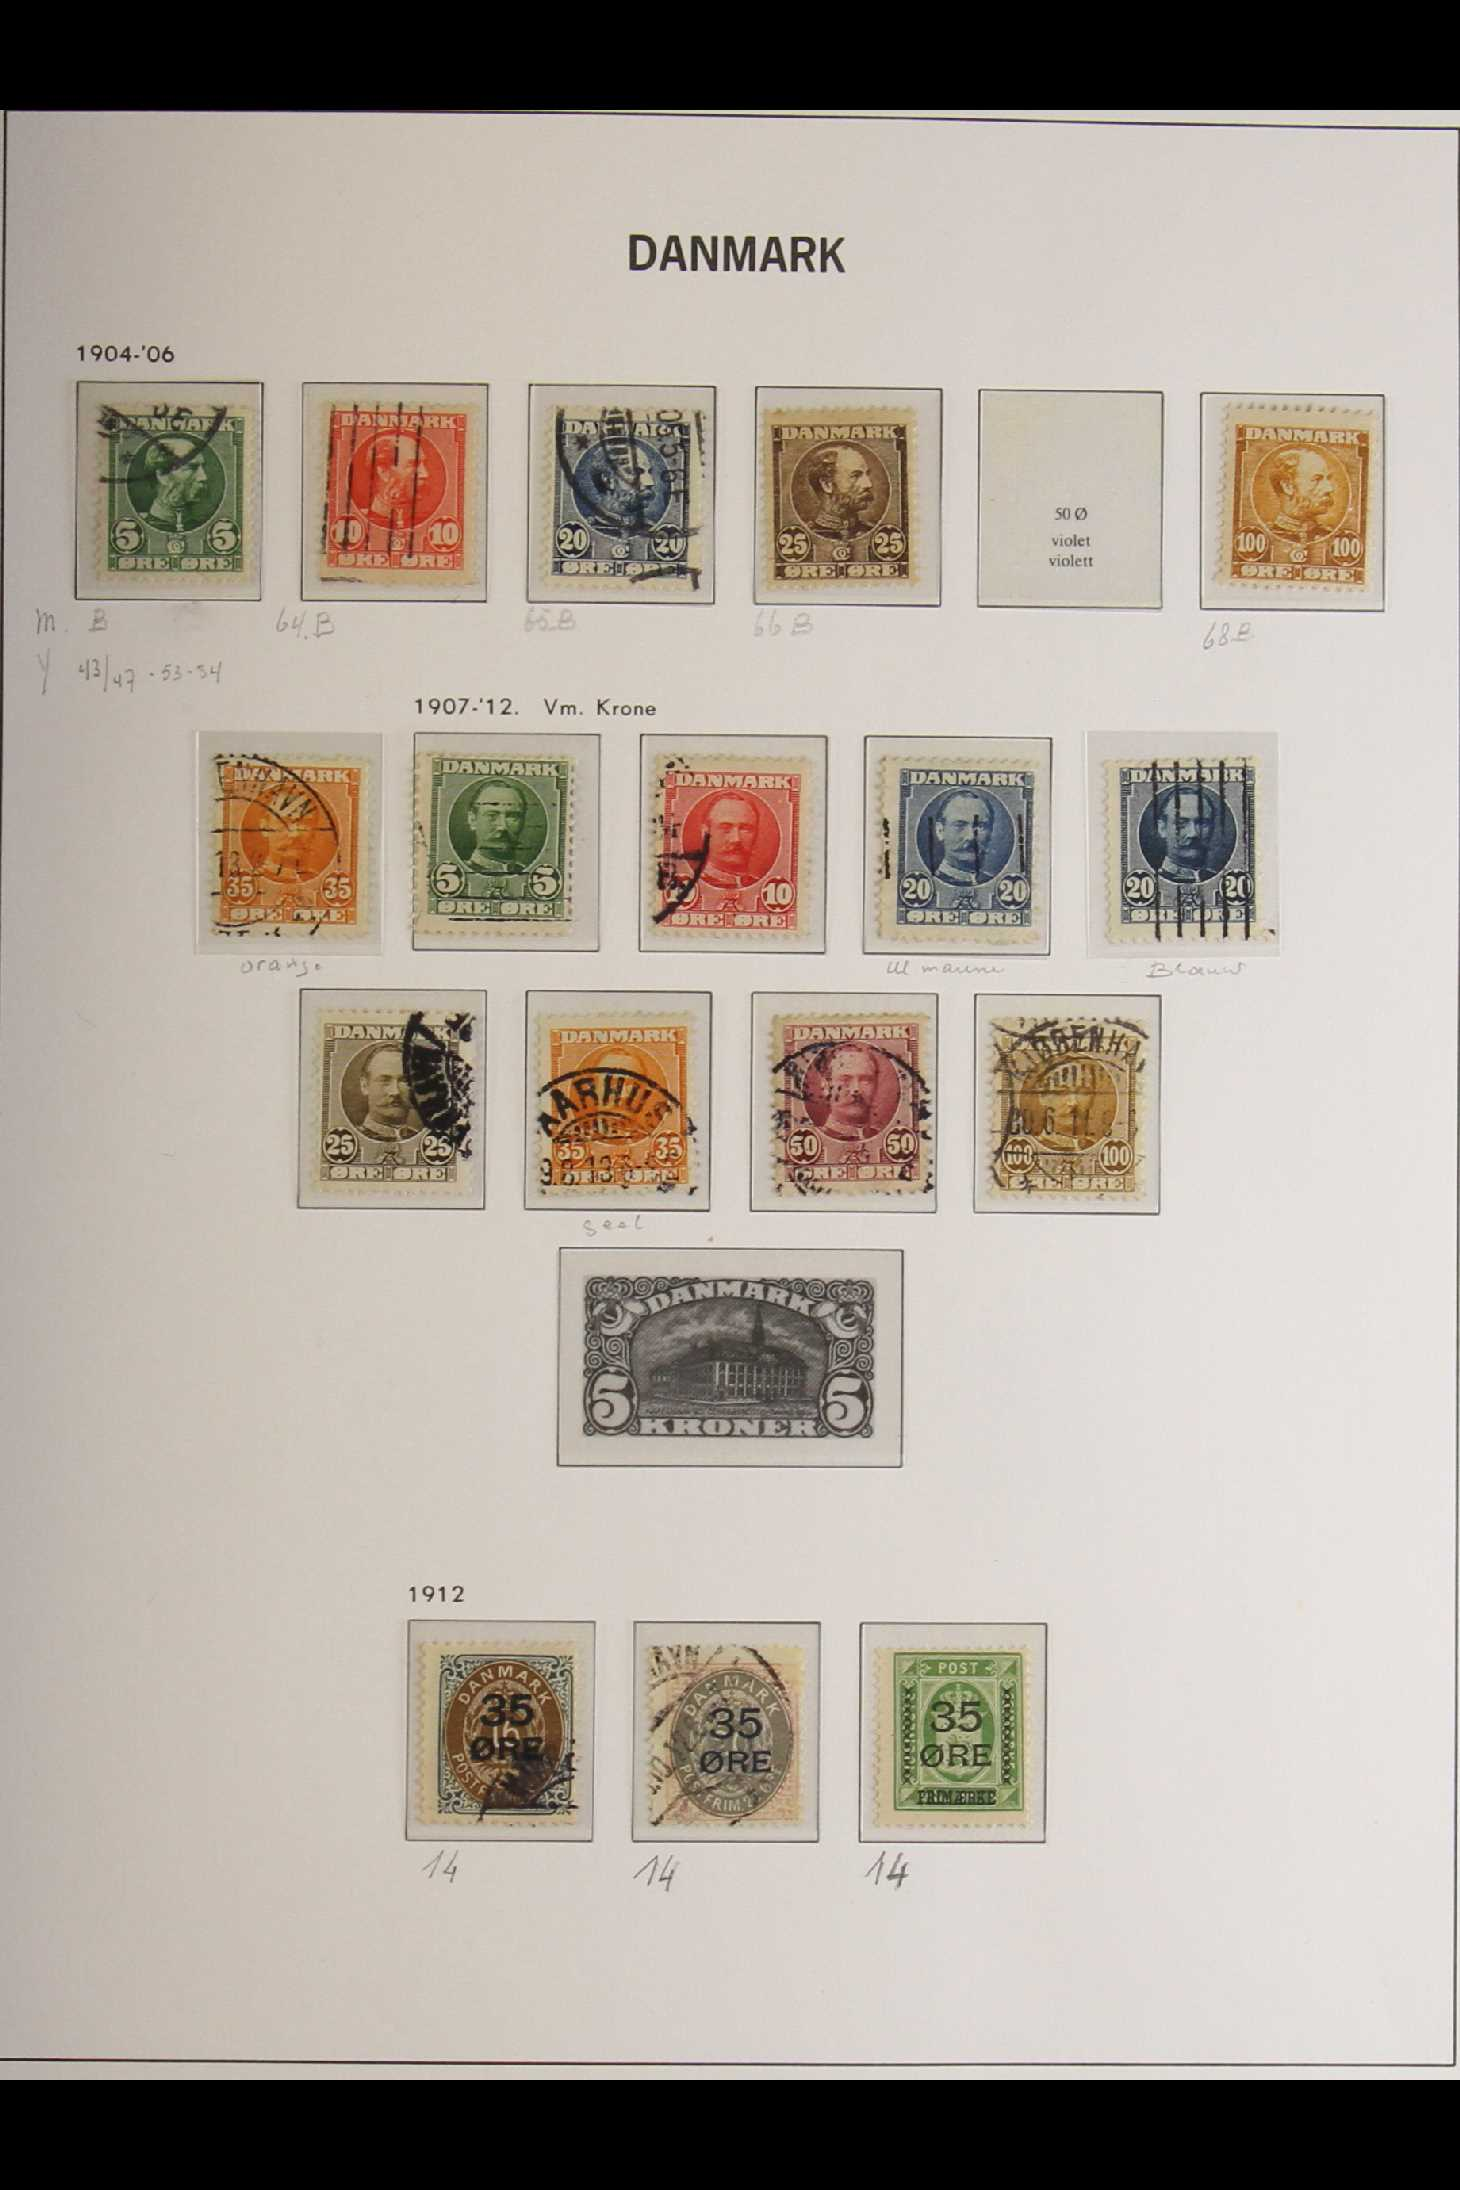 DENMARK 1882-1969 mint and used collection in an album incl. 1882 (small corner figures) 5 ore and - Image 13 of 15